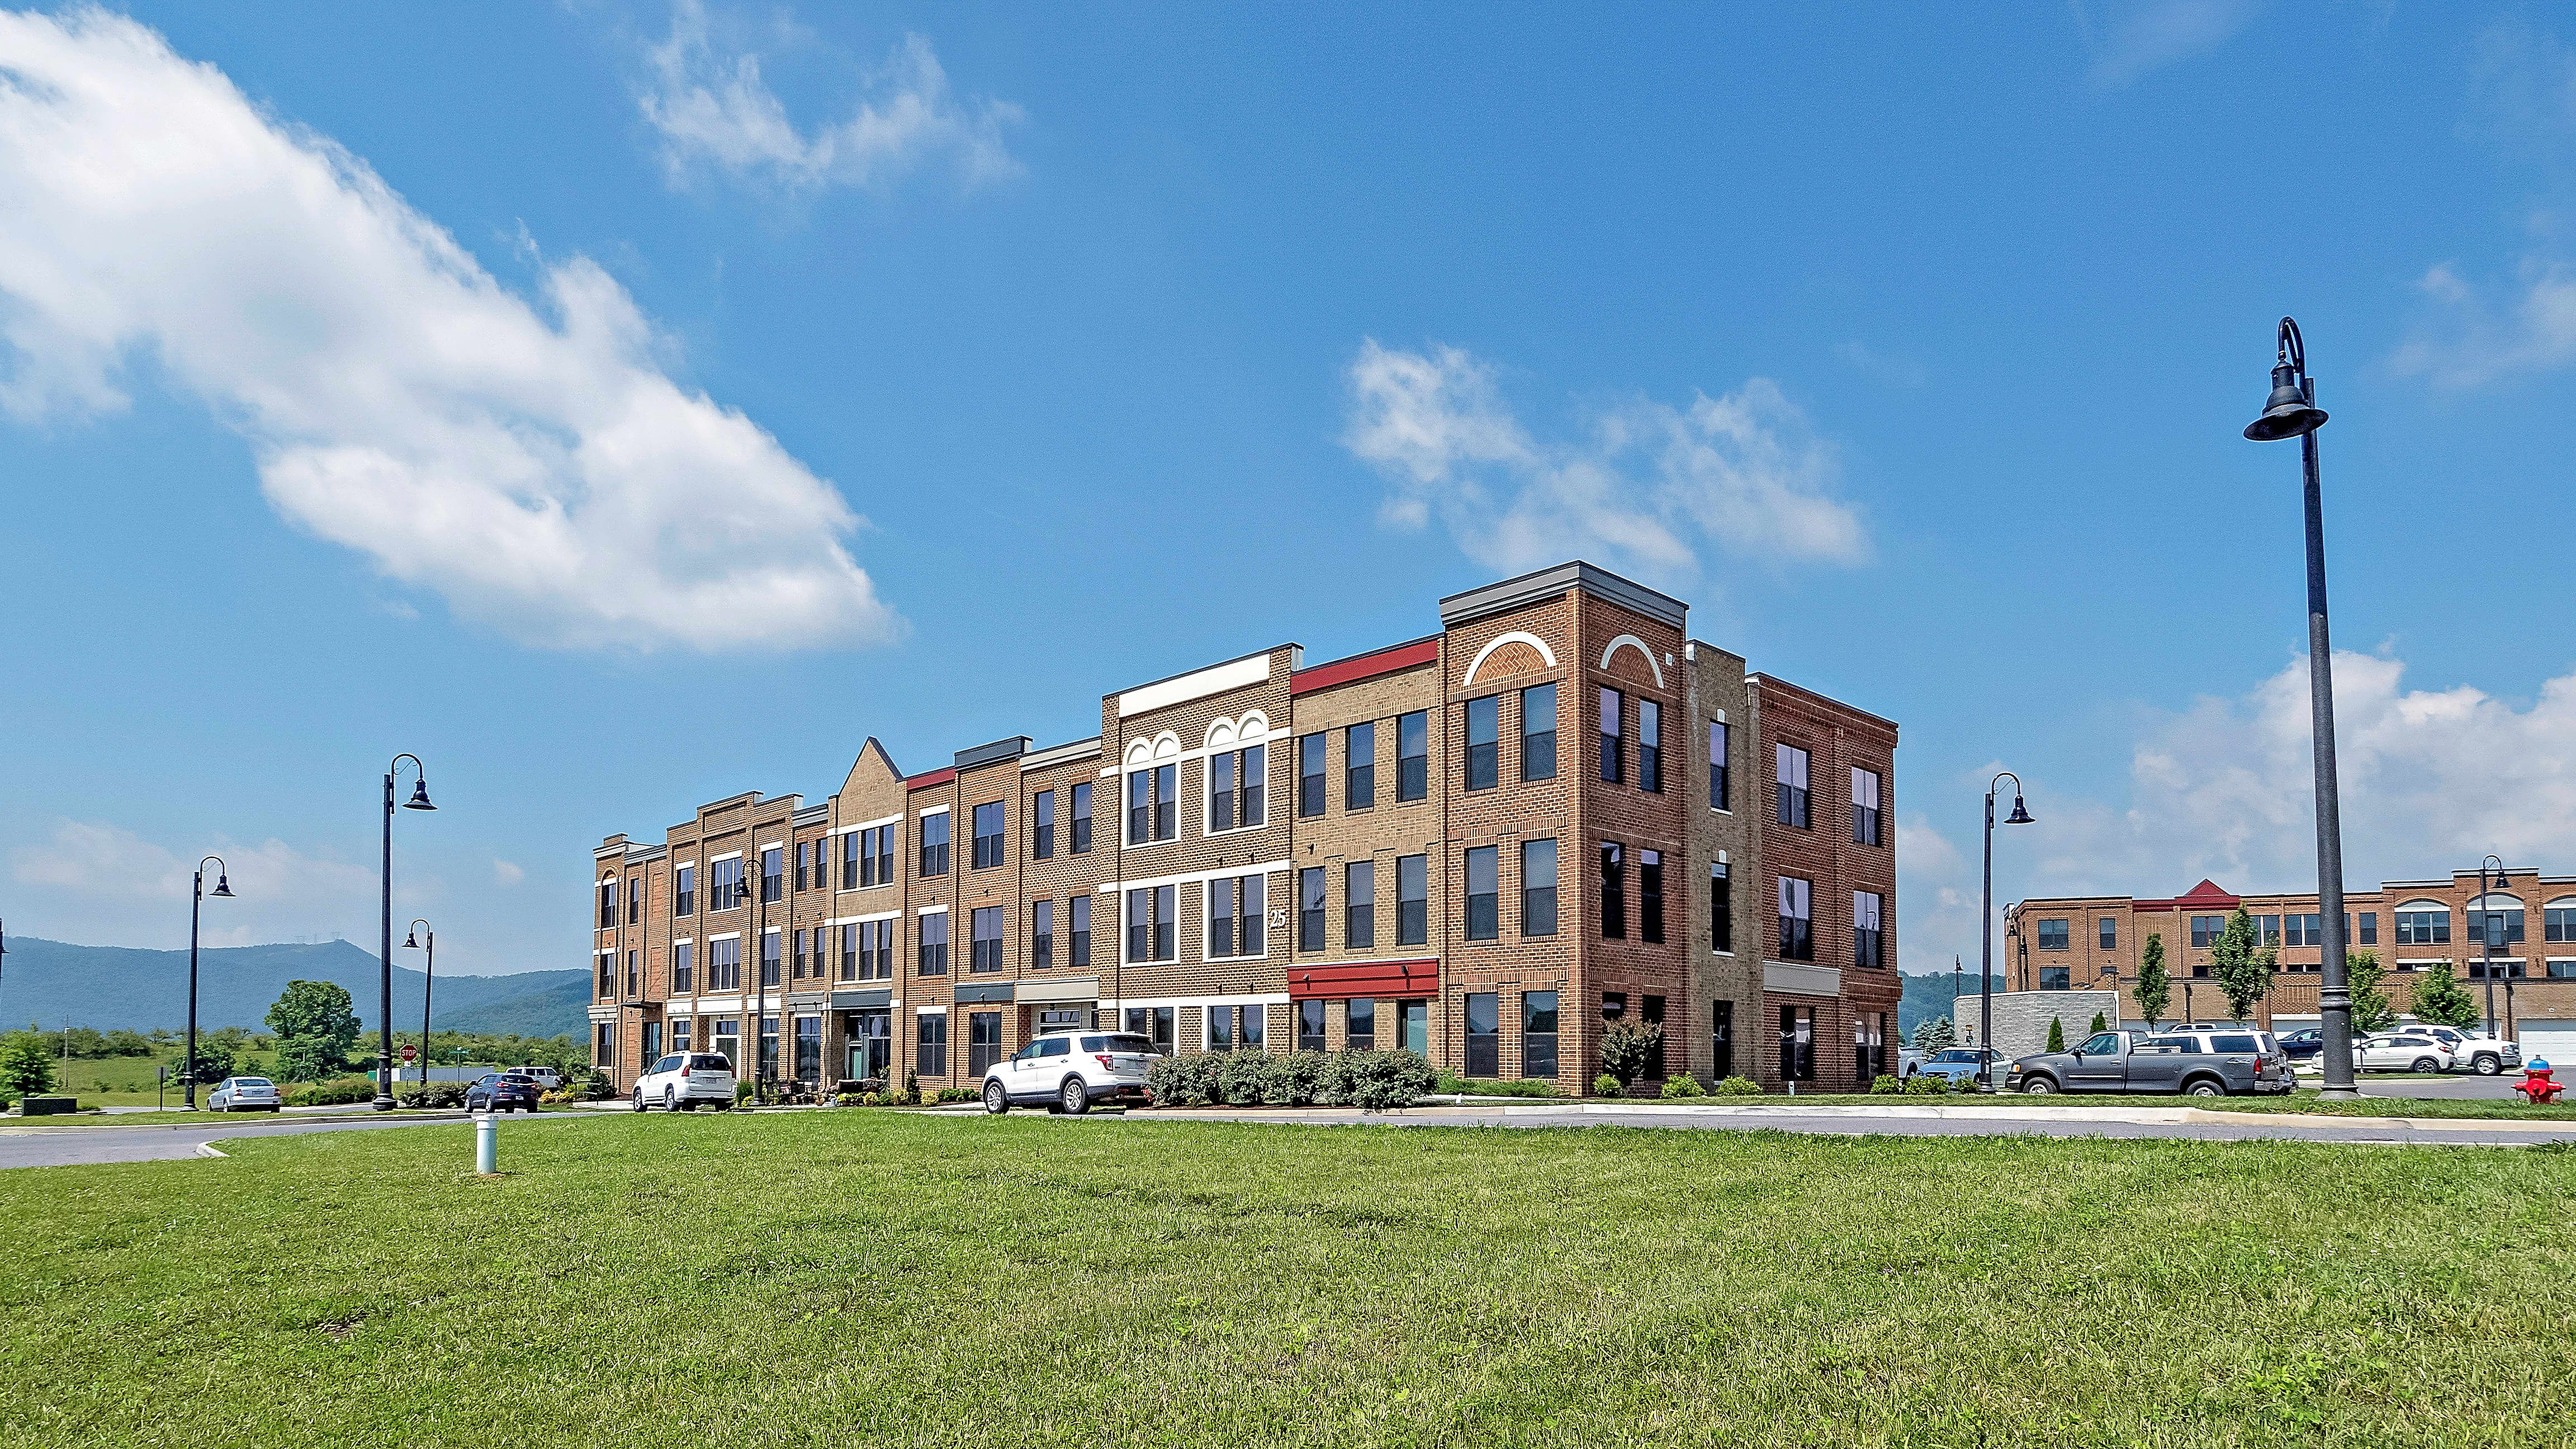 Apartments Near Hollins Daleville Town Center for Hollins University Students in Roanoke, VA